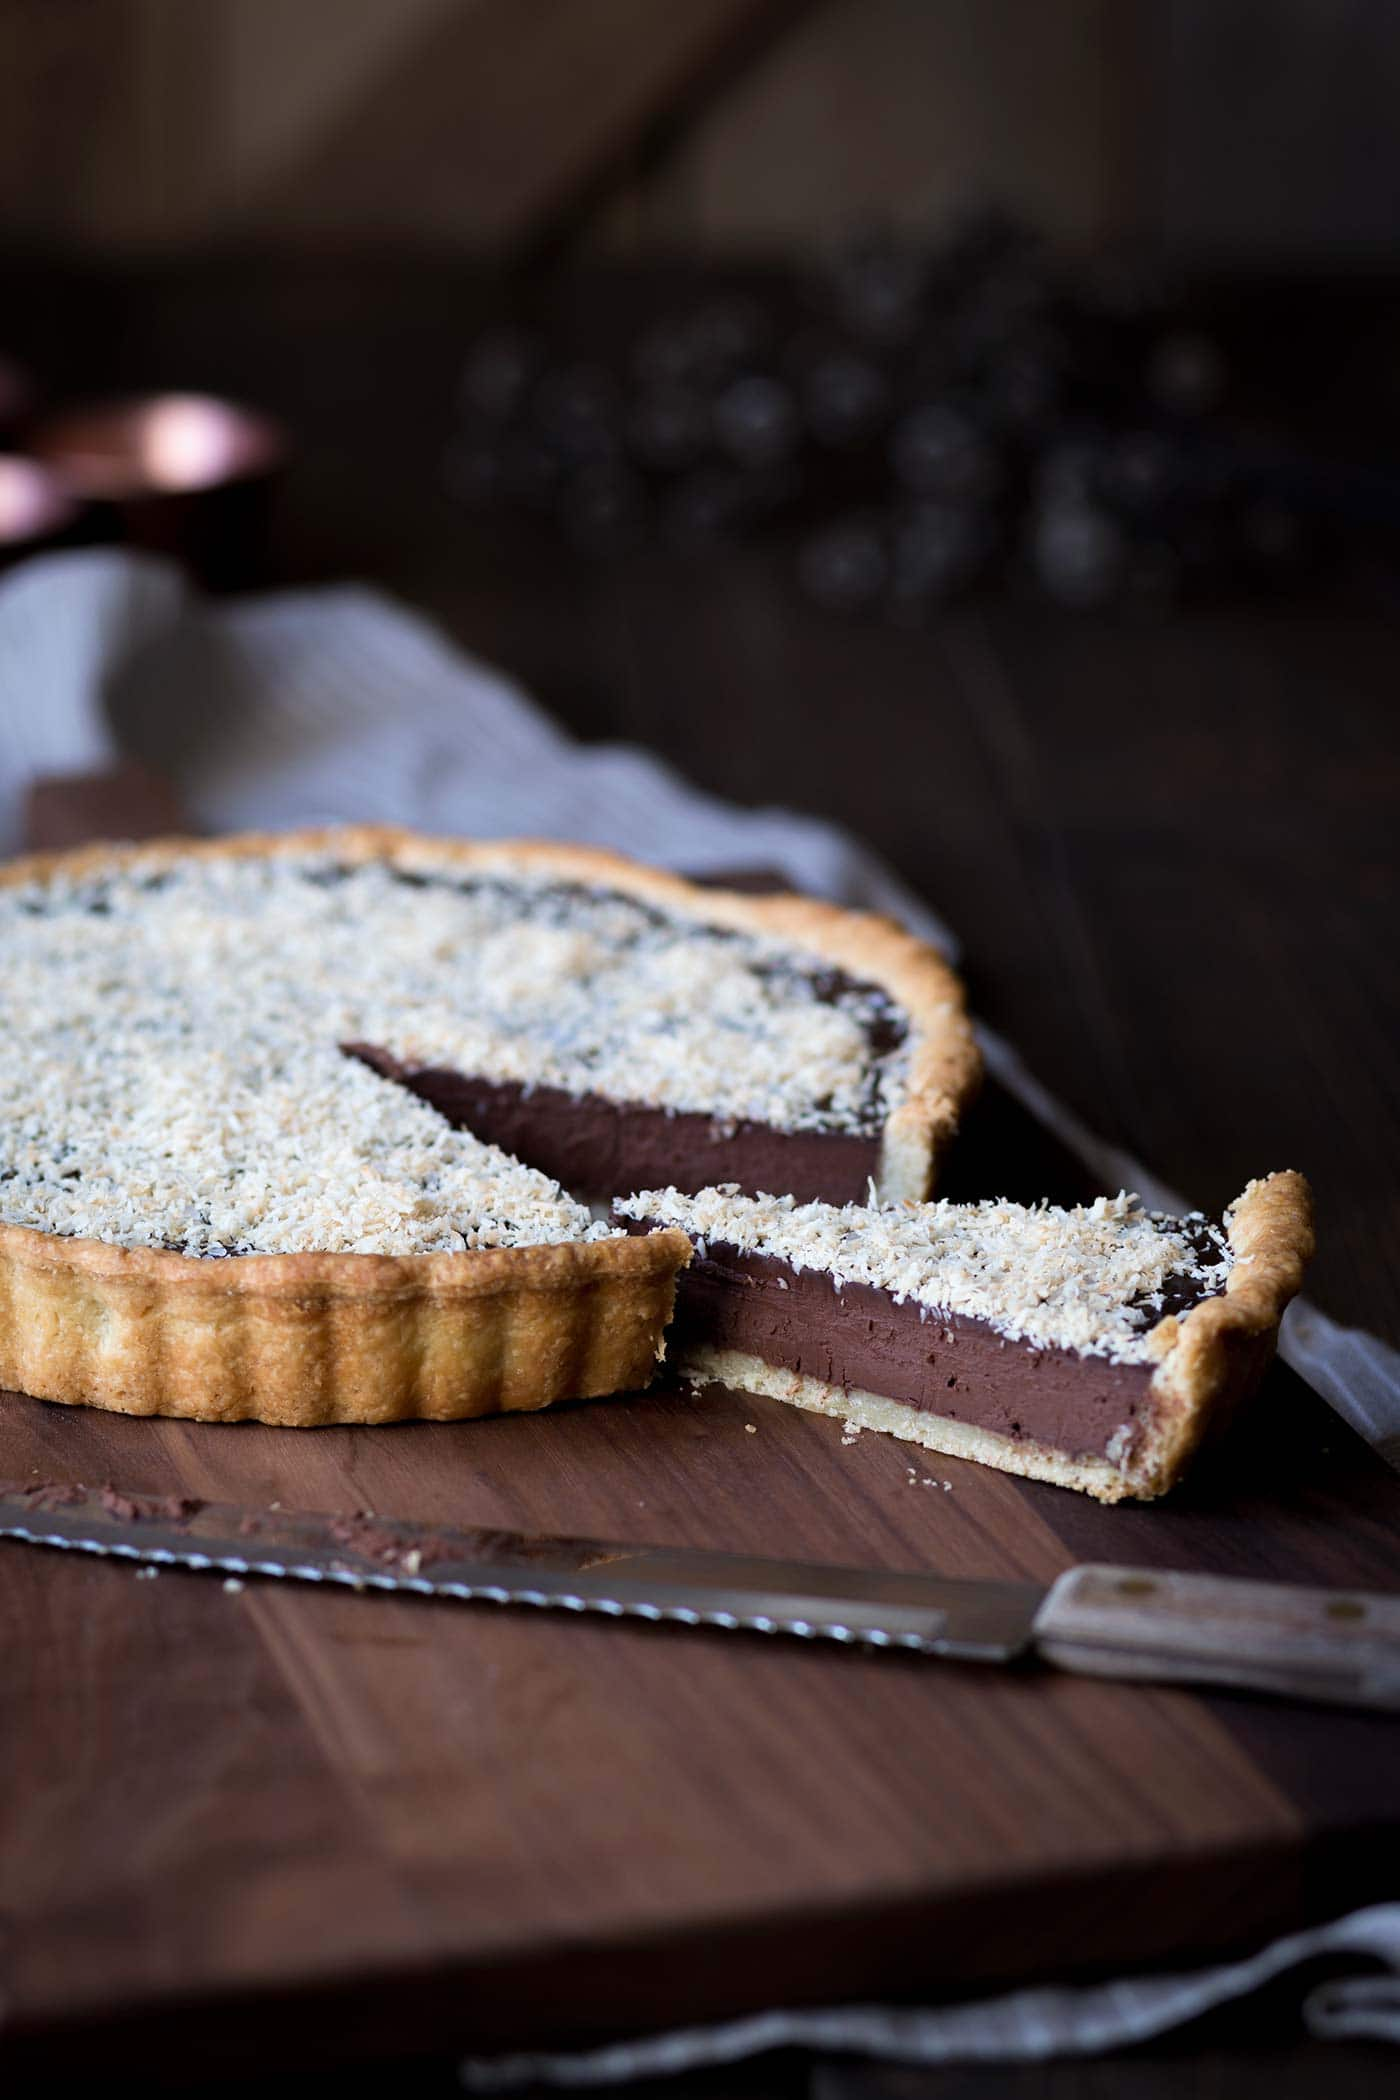 This Bittersweet Chocolate Tart with Toasted Coconut and Sea Salt is rich, decadent and perfect for parties. People will beg you for the recipe! SavorySimple.net